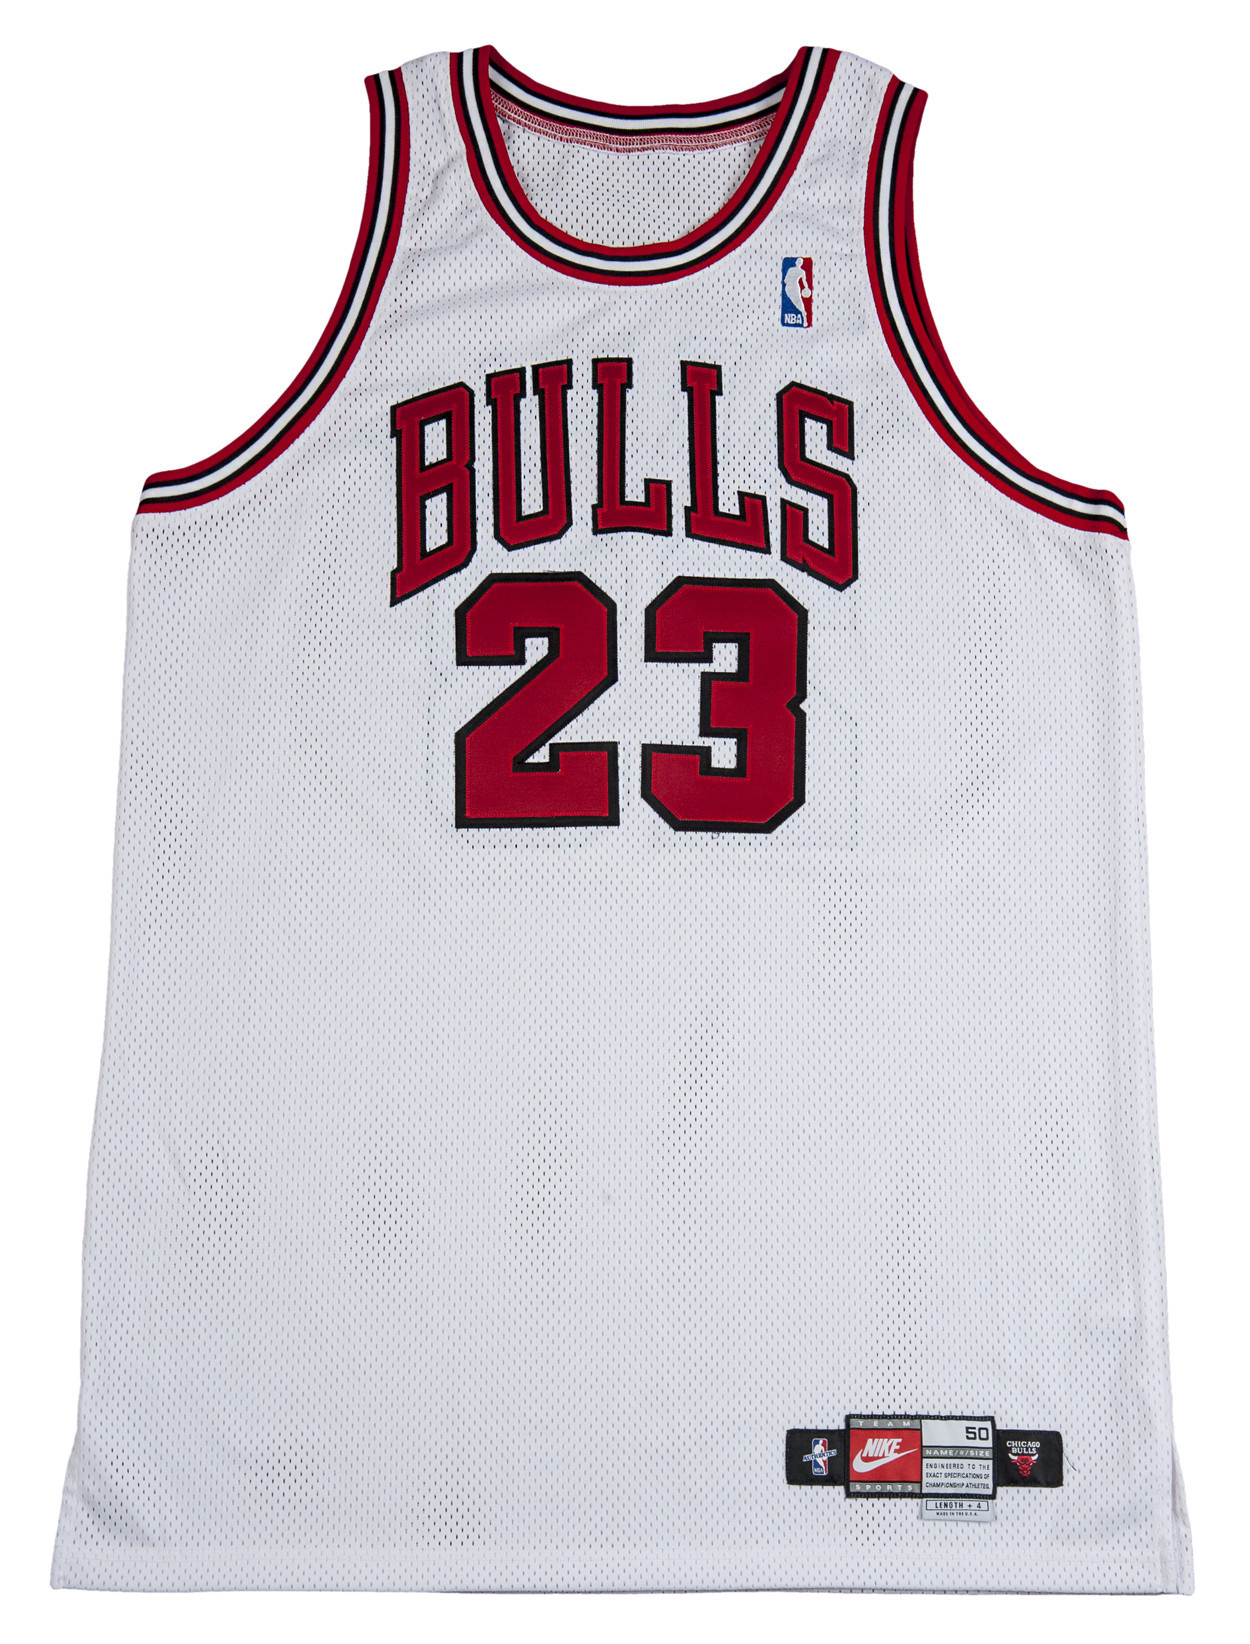 Michael Jordan  98 Bulls jersey goes for record  173K - Chicago Tribune 92c3614e9